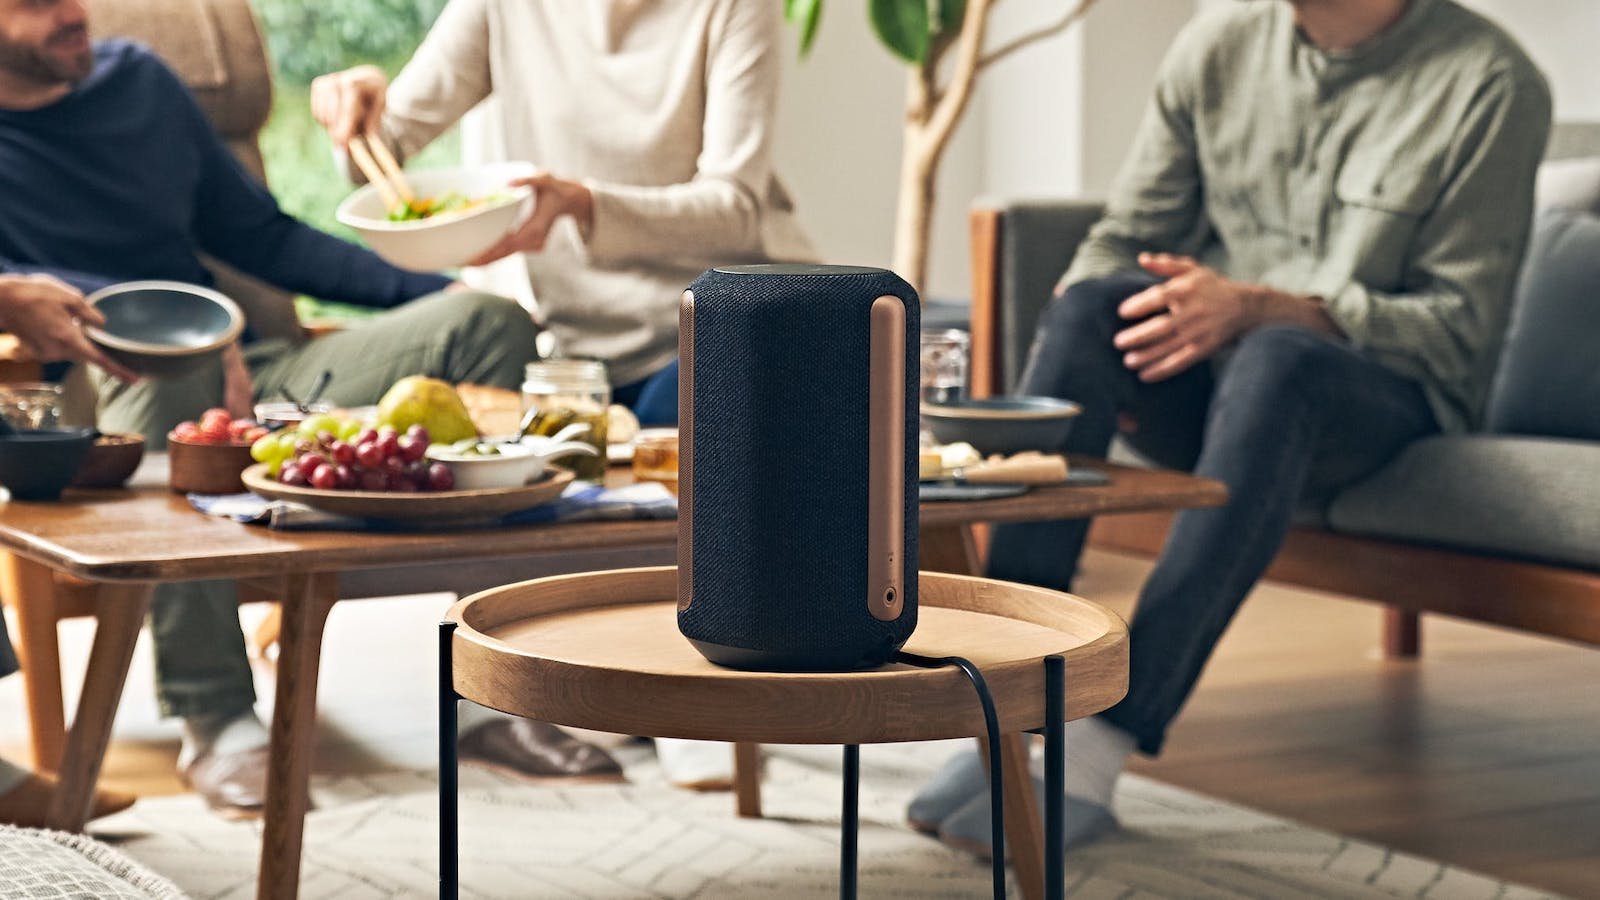 Sony SRS-RA3000 wireless speaker boasts ambient room-filling sound